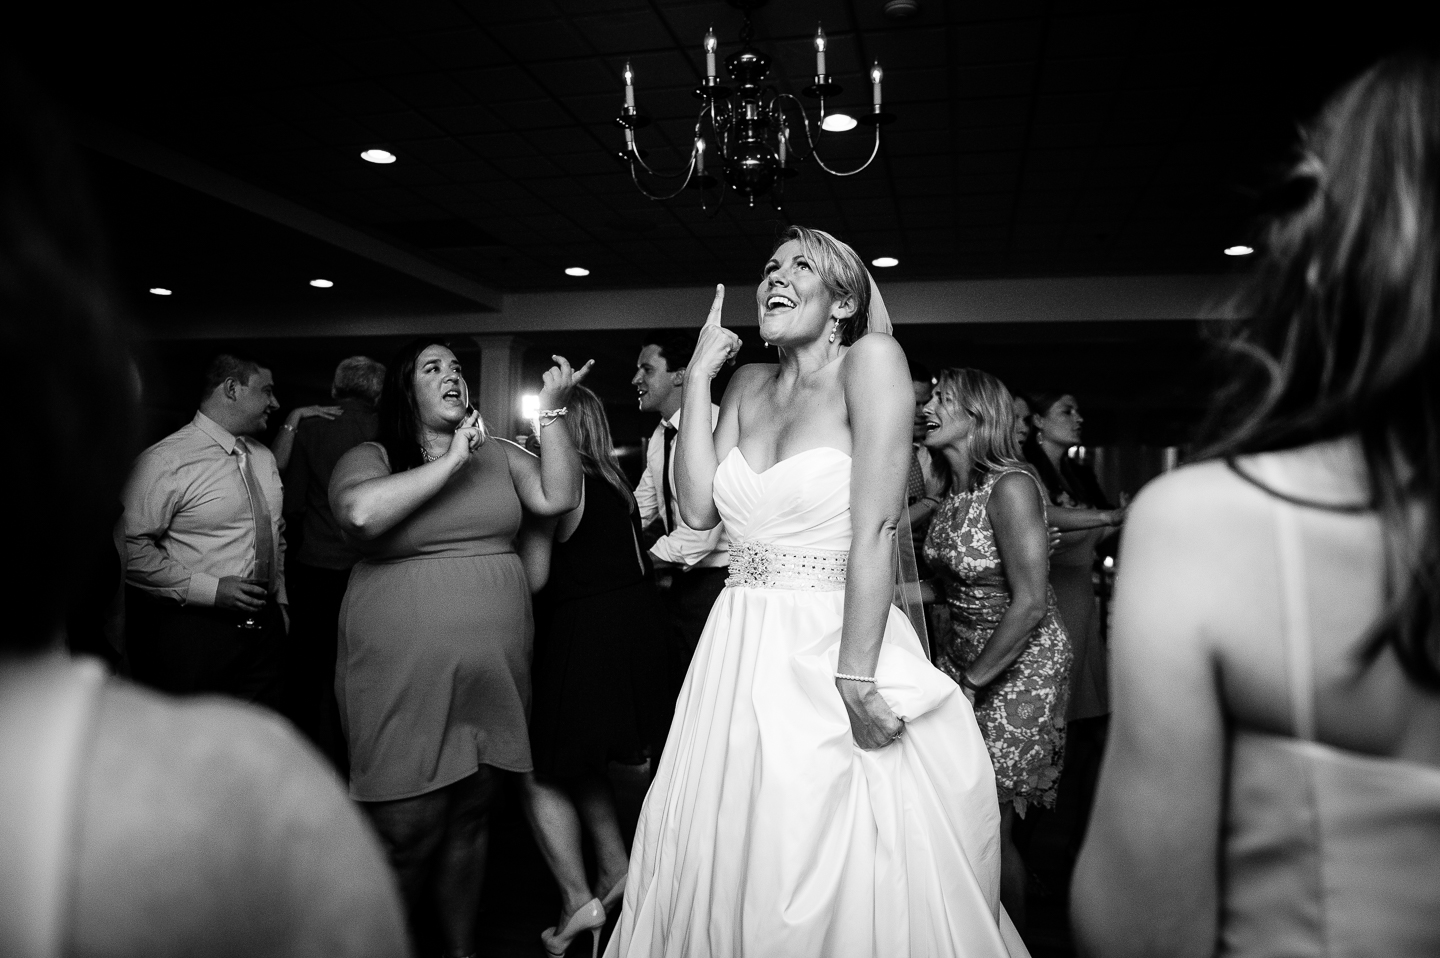 a bride dancing during her evening wedding reception